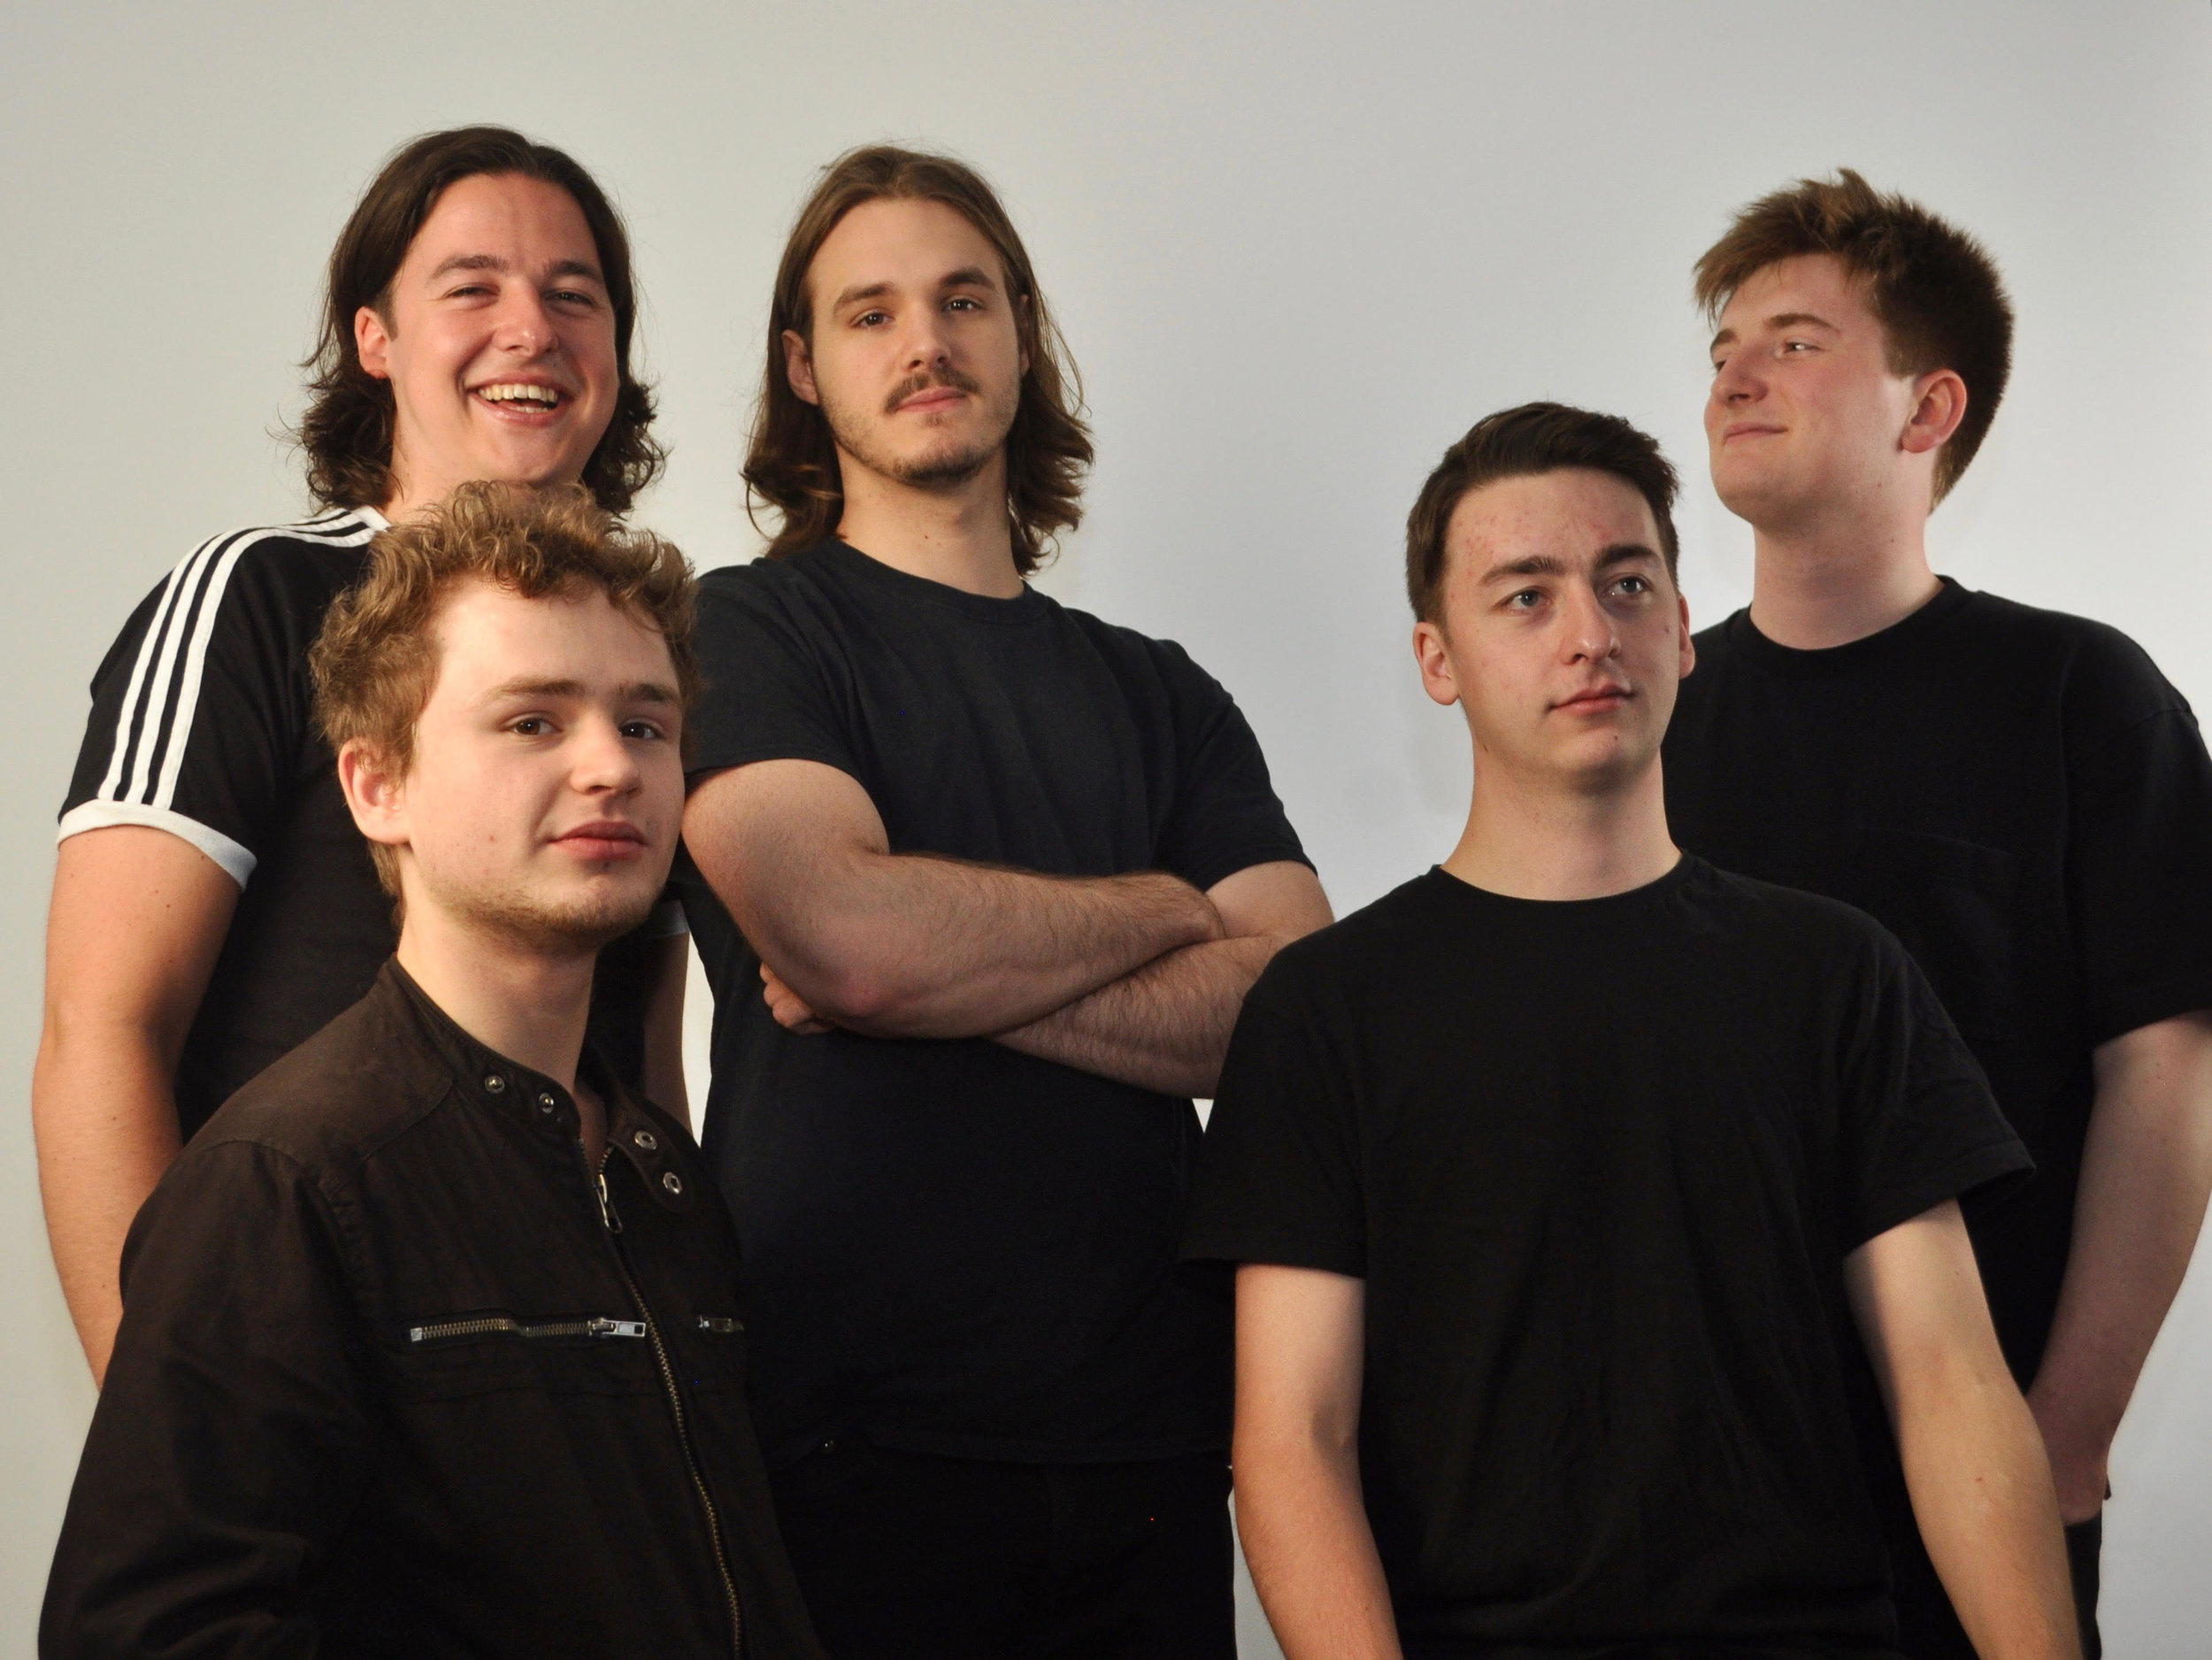 Left to Right: Rory Ingham, Toby Comeau, Joe Lee, Dominic Ingham, Jonny Mansfield